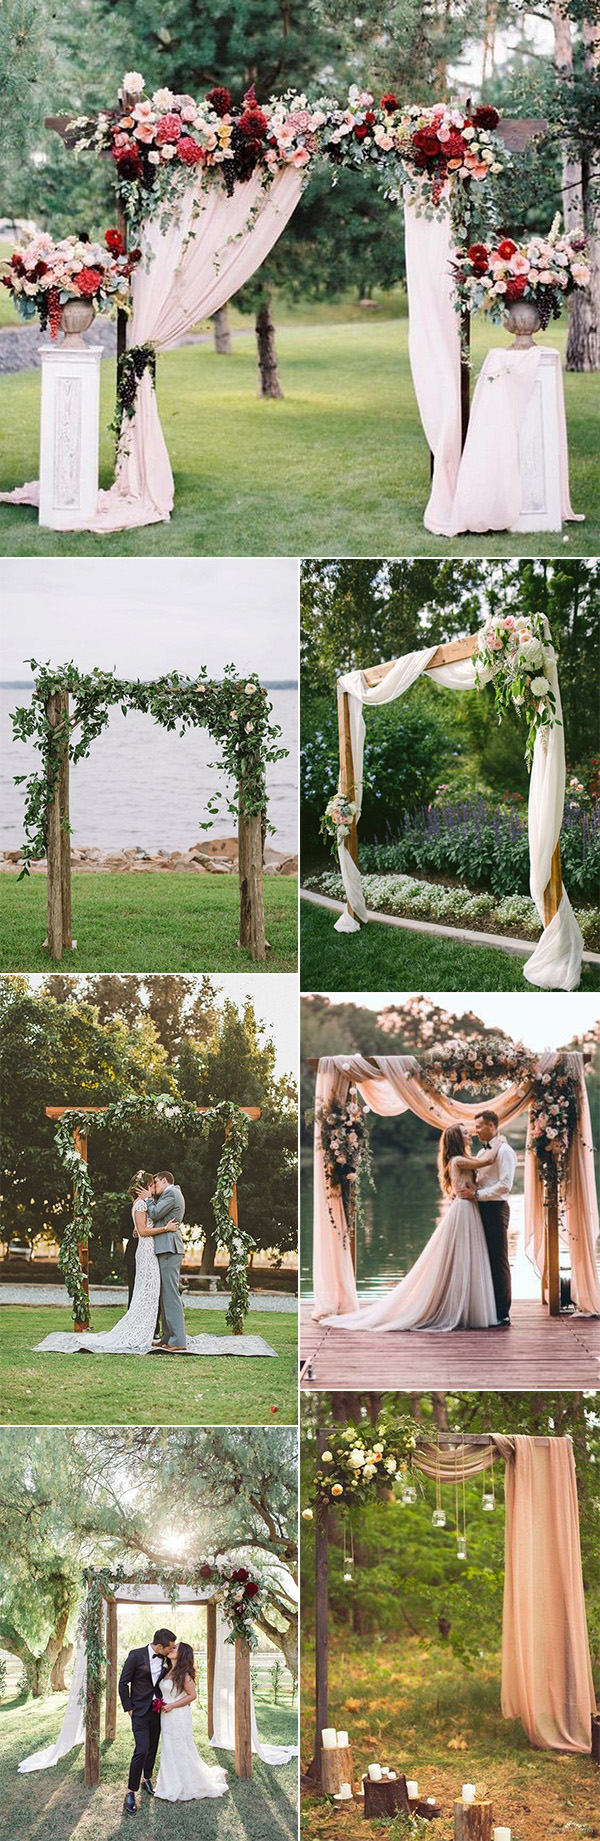 35 brilliant outdoor wedding decoration ideas for 2018 trends outdoor wedding ceremony arch decoration ideas for 2018 junglespirit Image collections